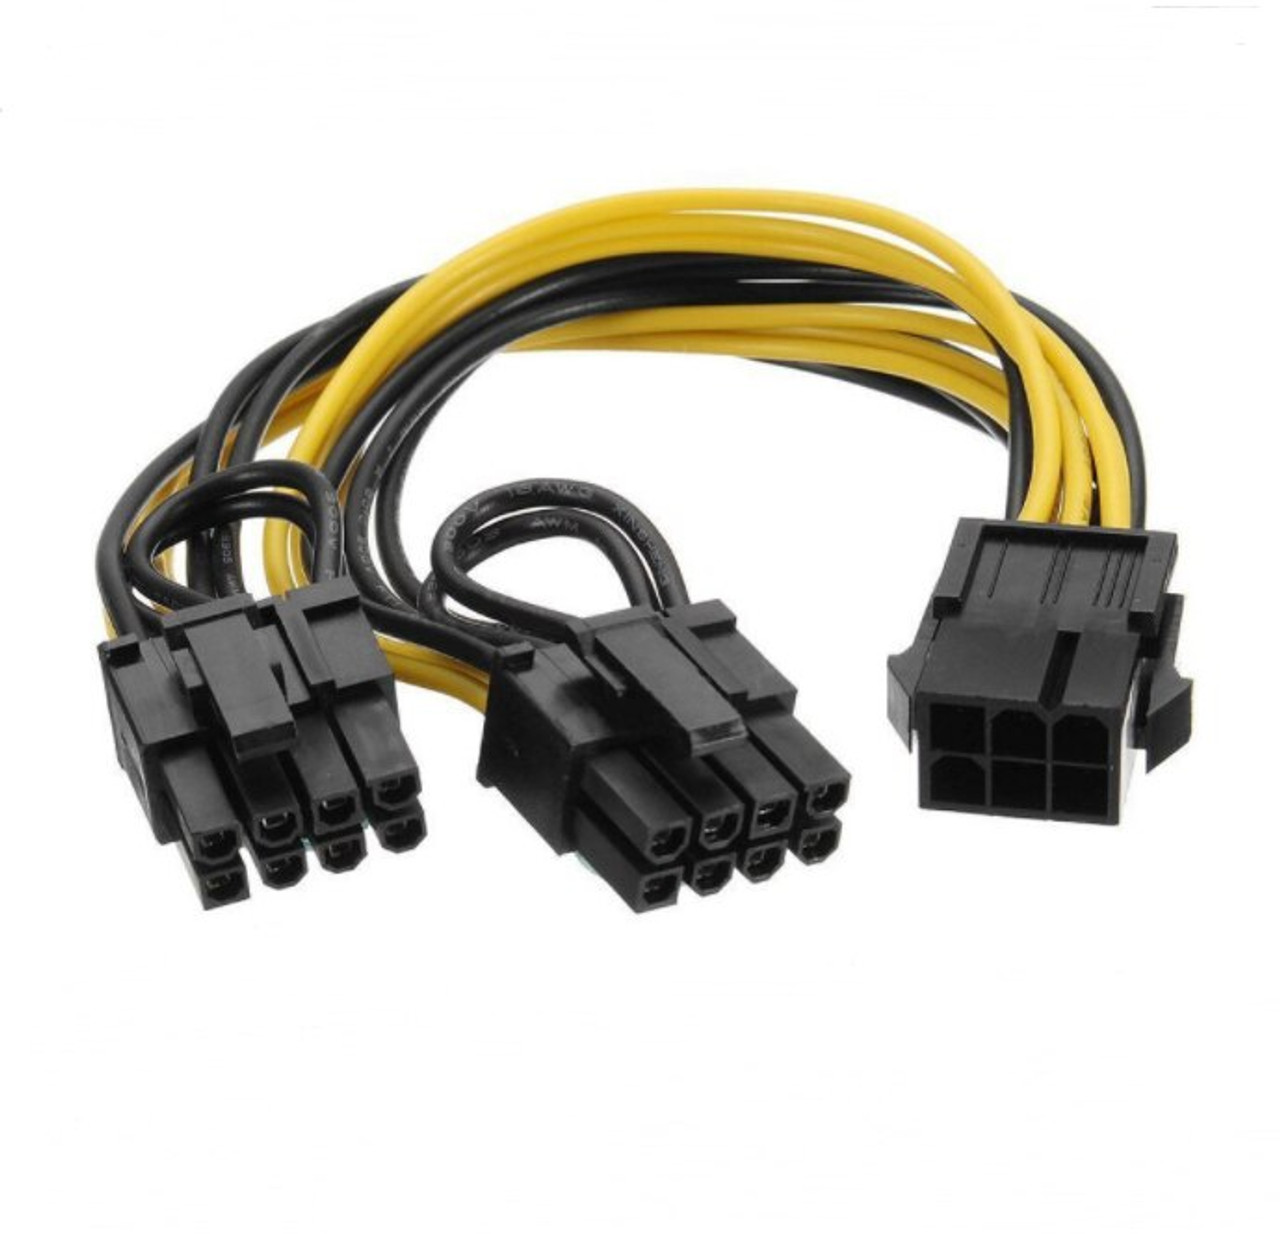 PCI-E 6-pin to 2x 6+2-pin (6-pin/8-pin) Power Splitter Cable PCIE PCI Express